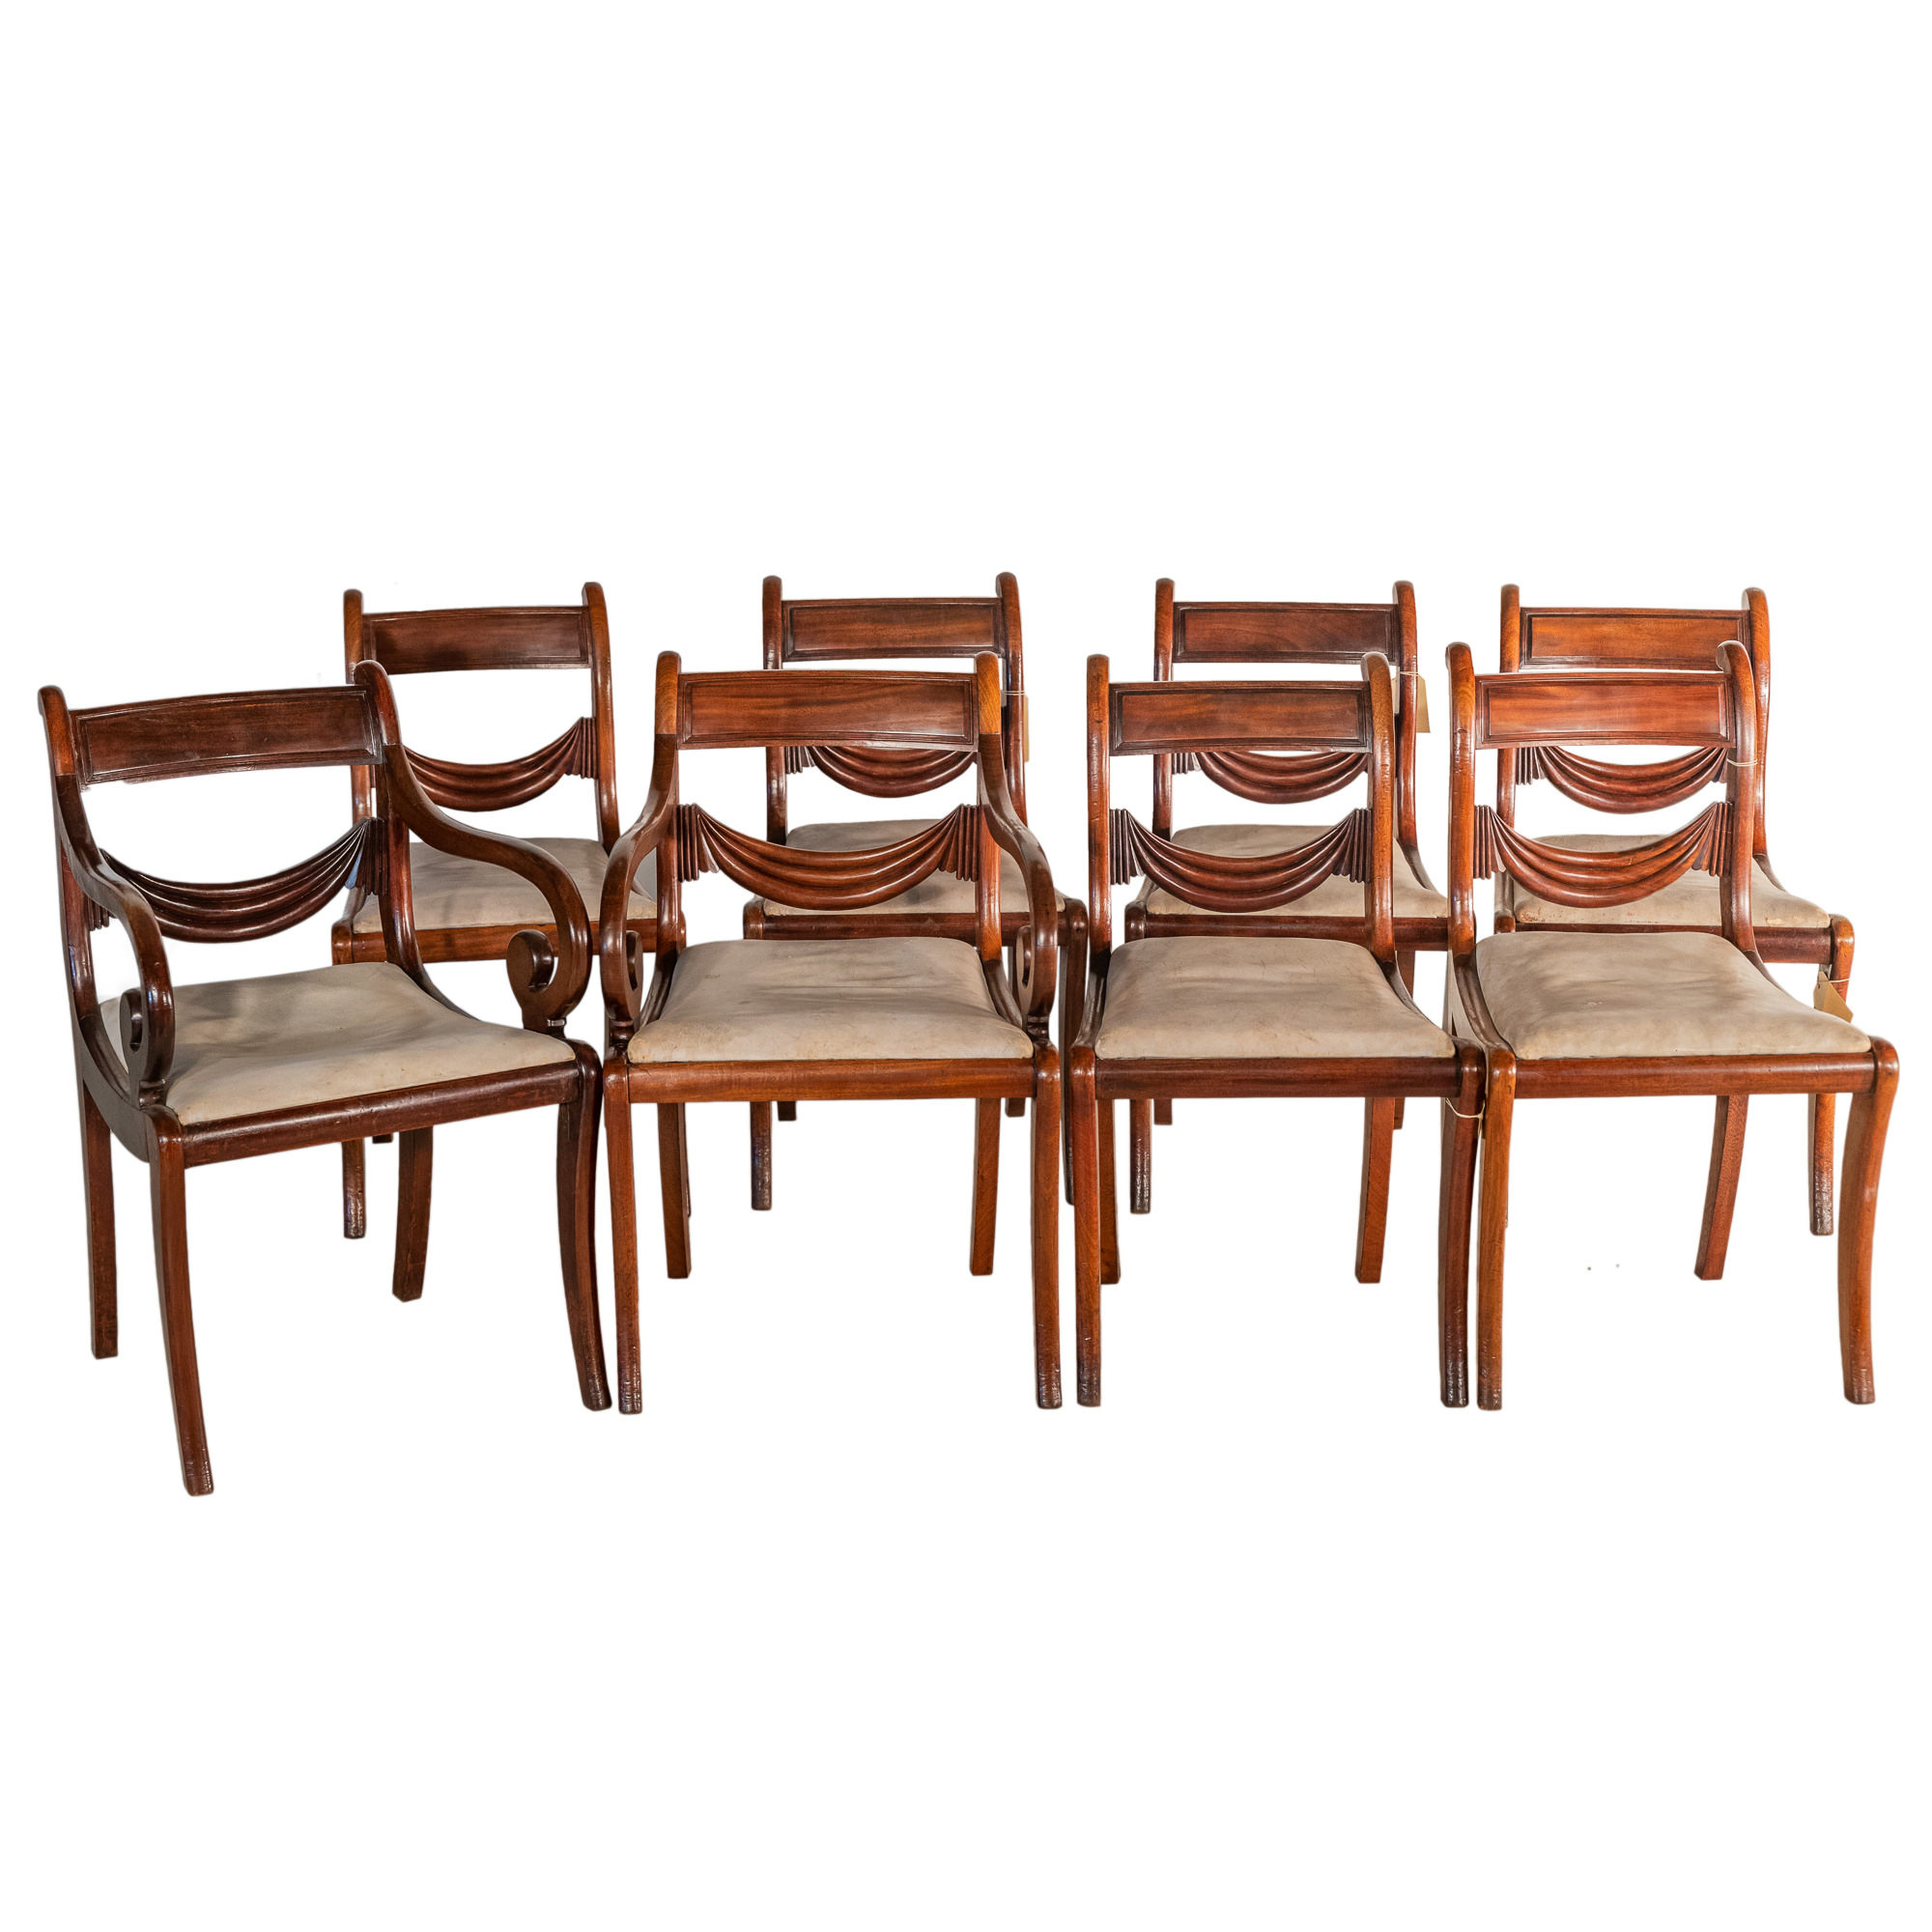 'Set of Eight Regency Period Mahogany Dining Chairs with Carved Ribbon Swag Splats Circa 1830'